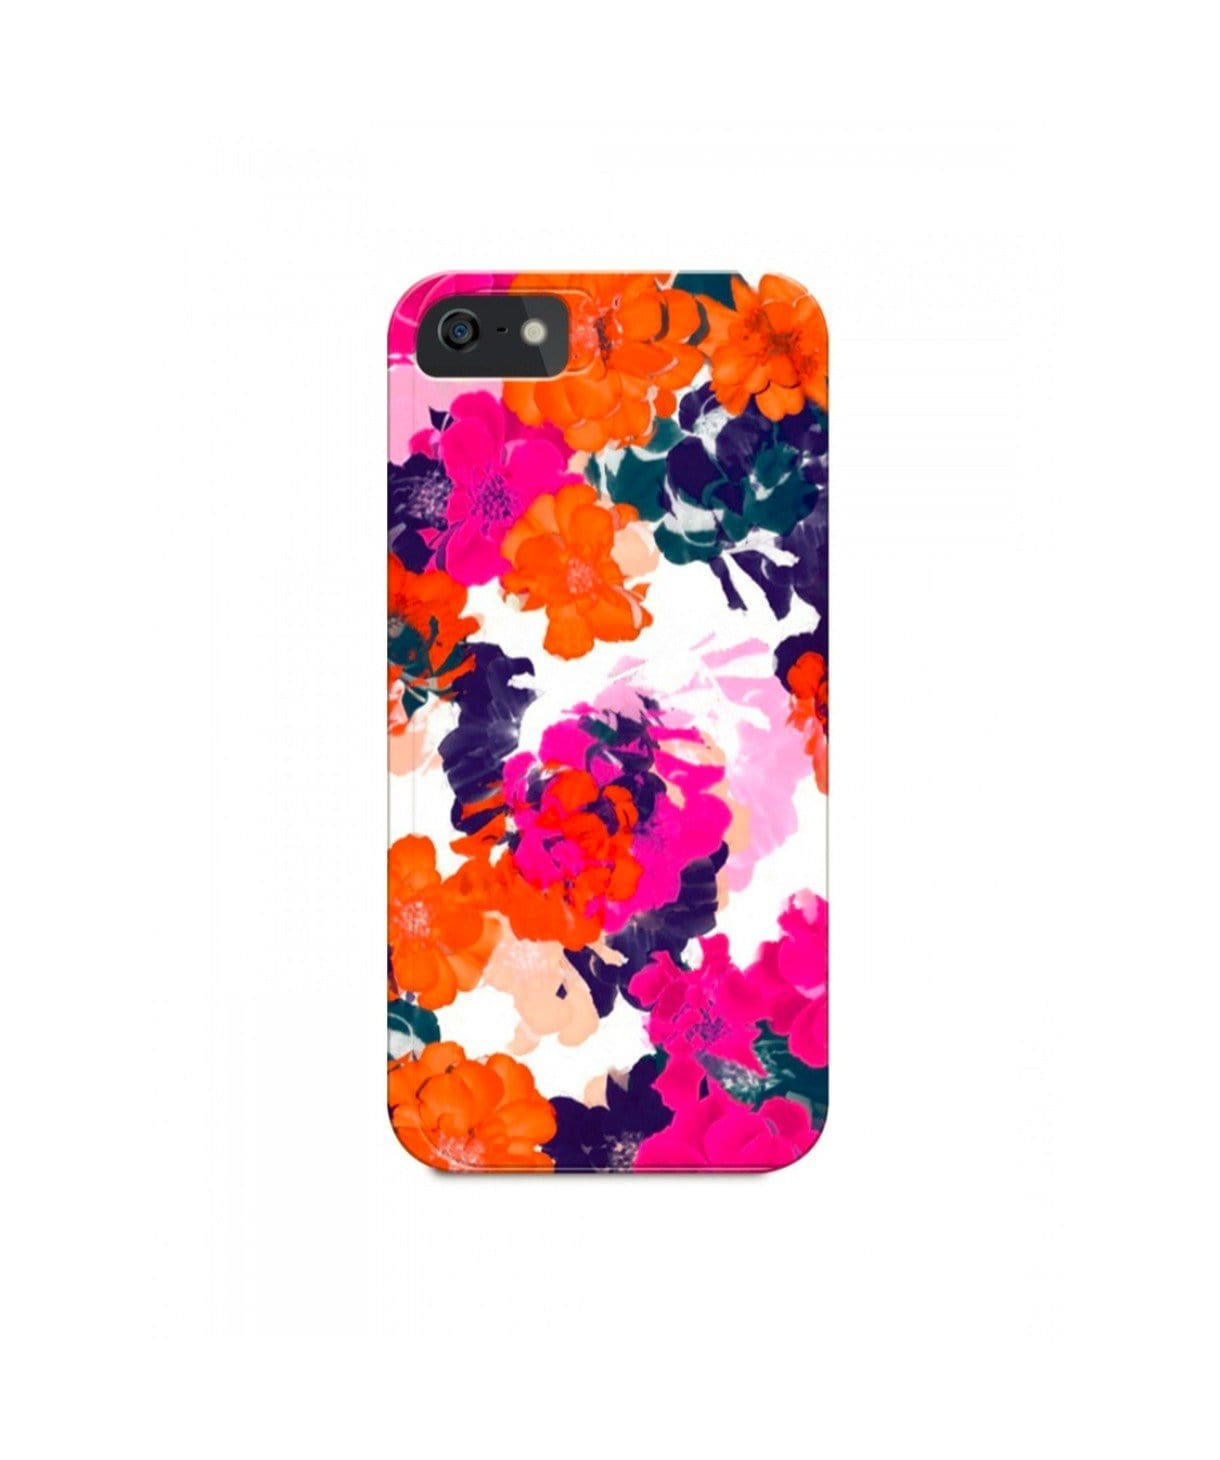 Floral Splash IPhone Cover (Personalisation Available) - Uptownie